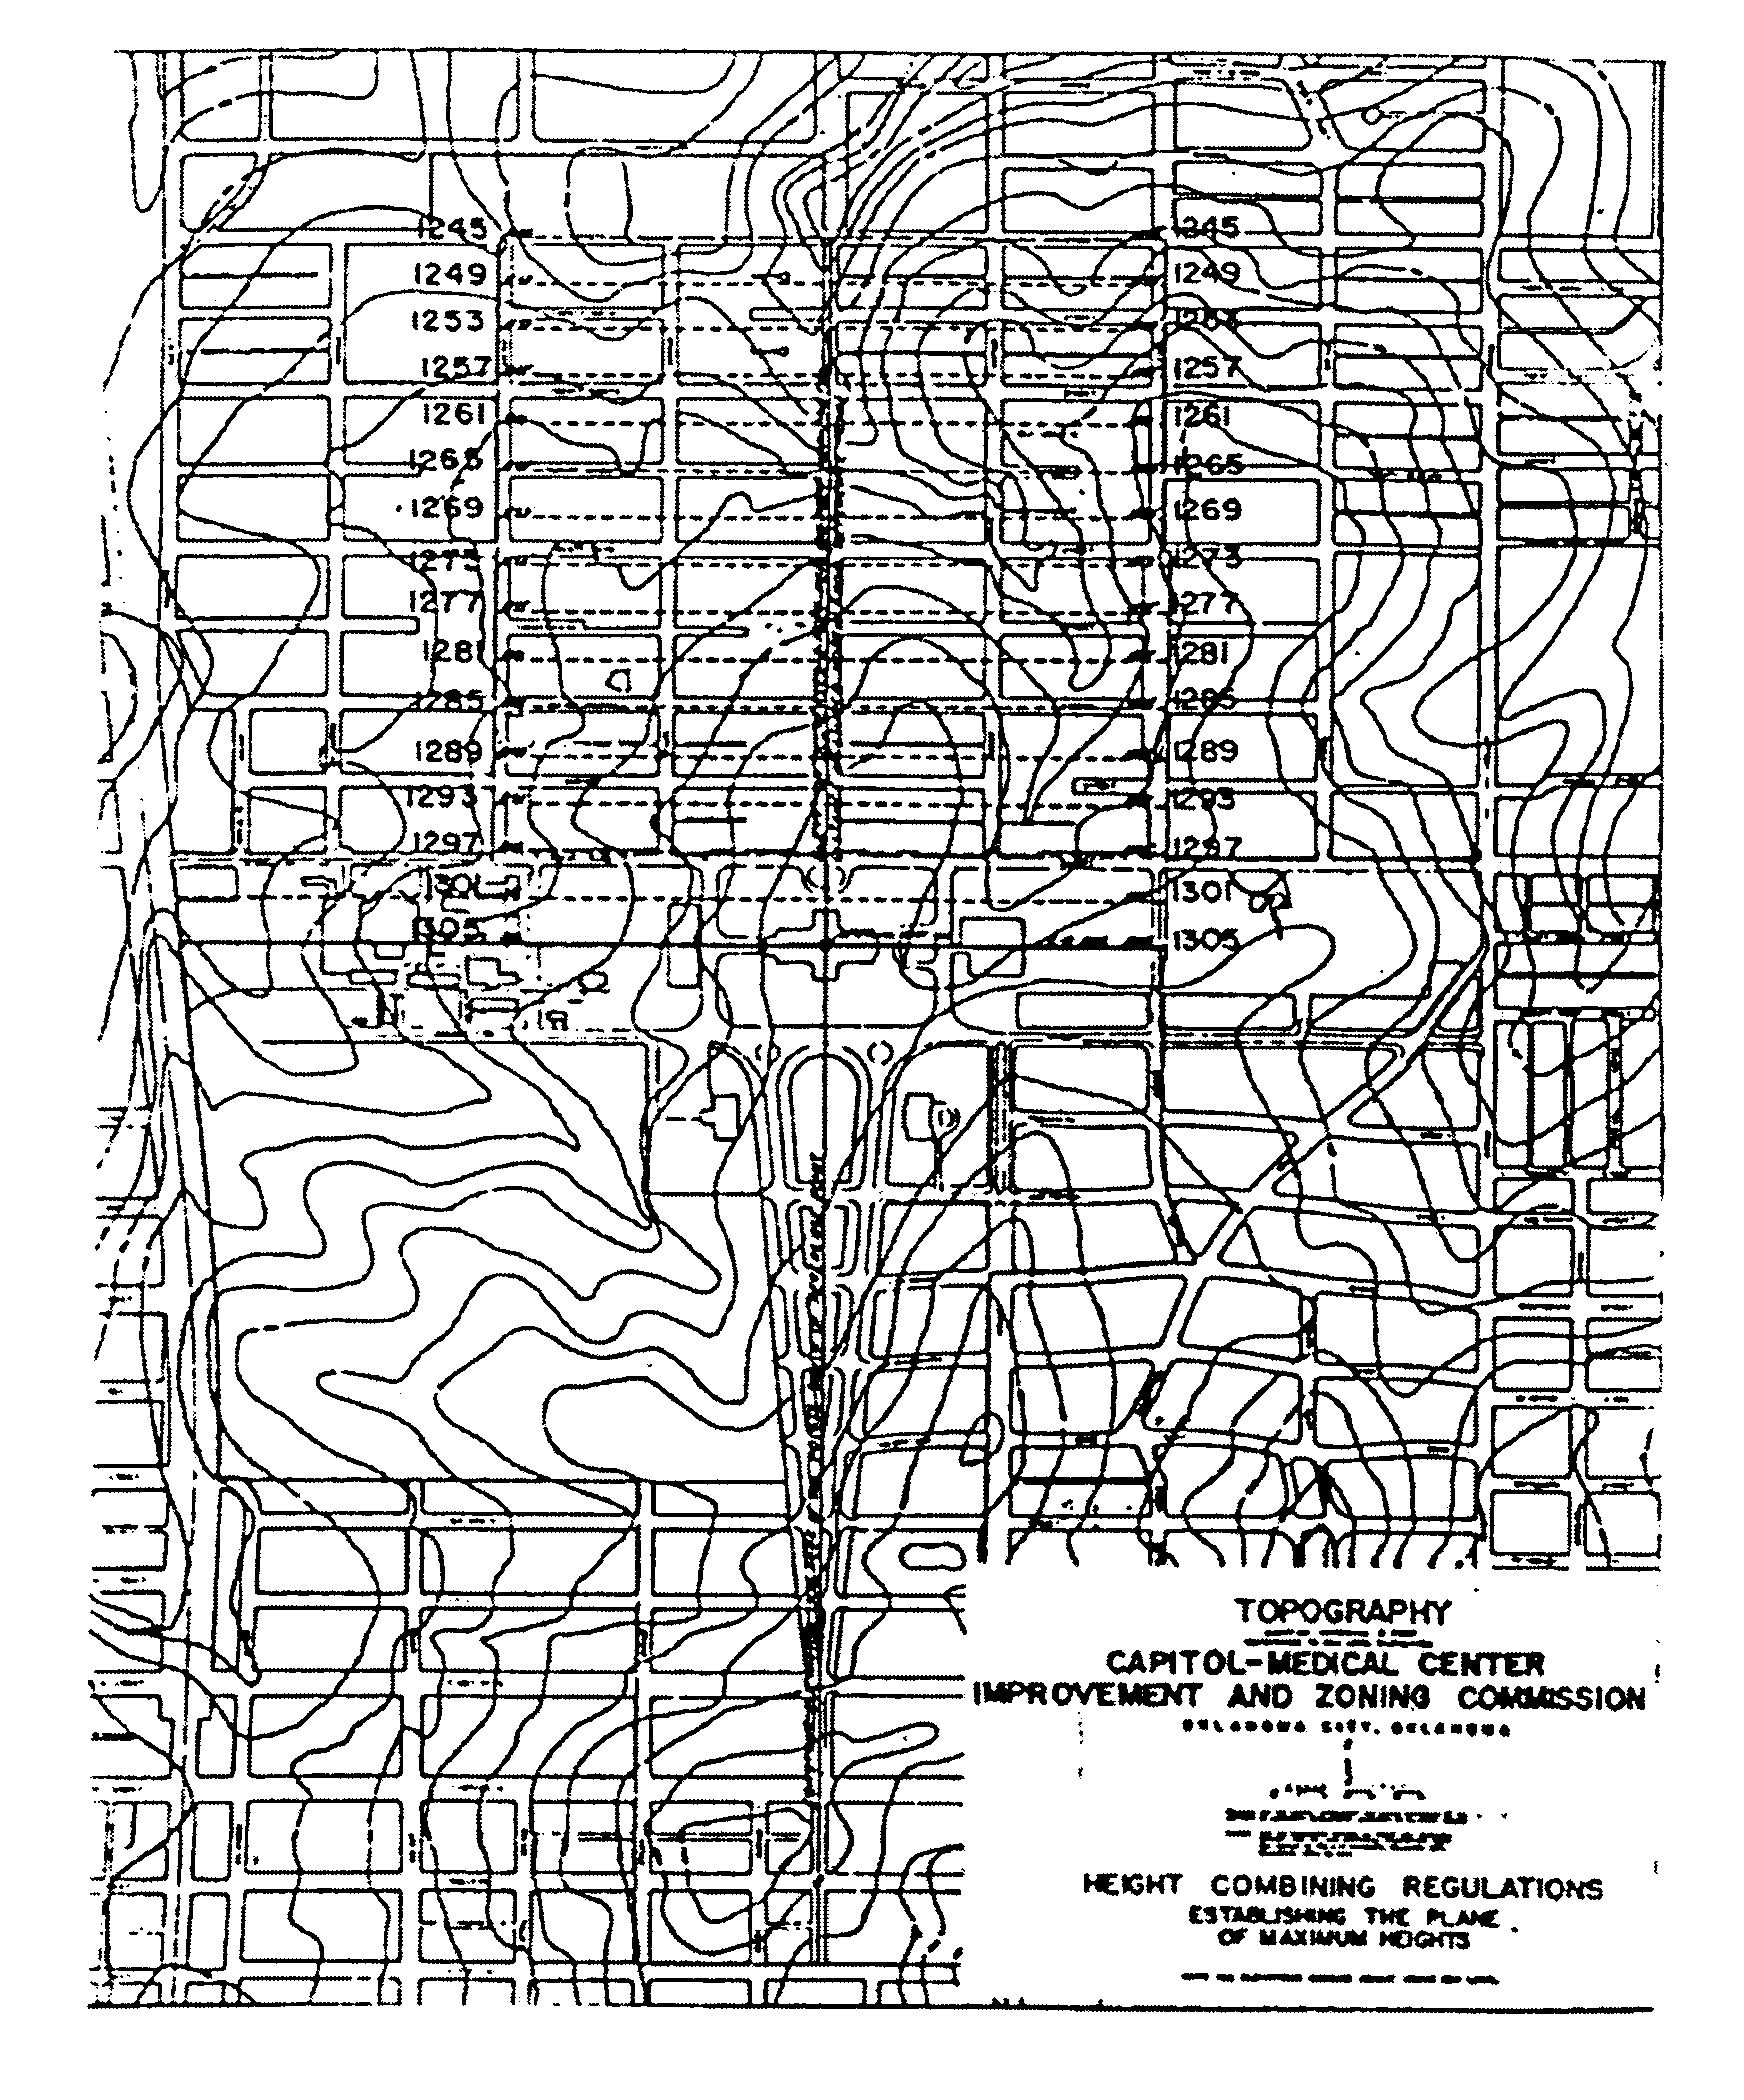 Official Height Zoning Map - Figure 1